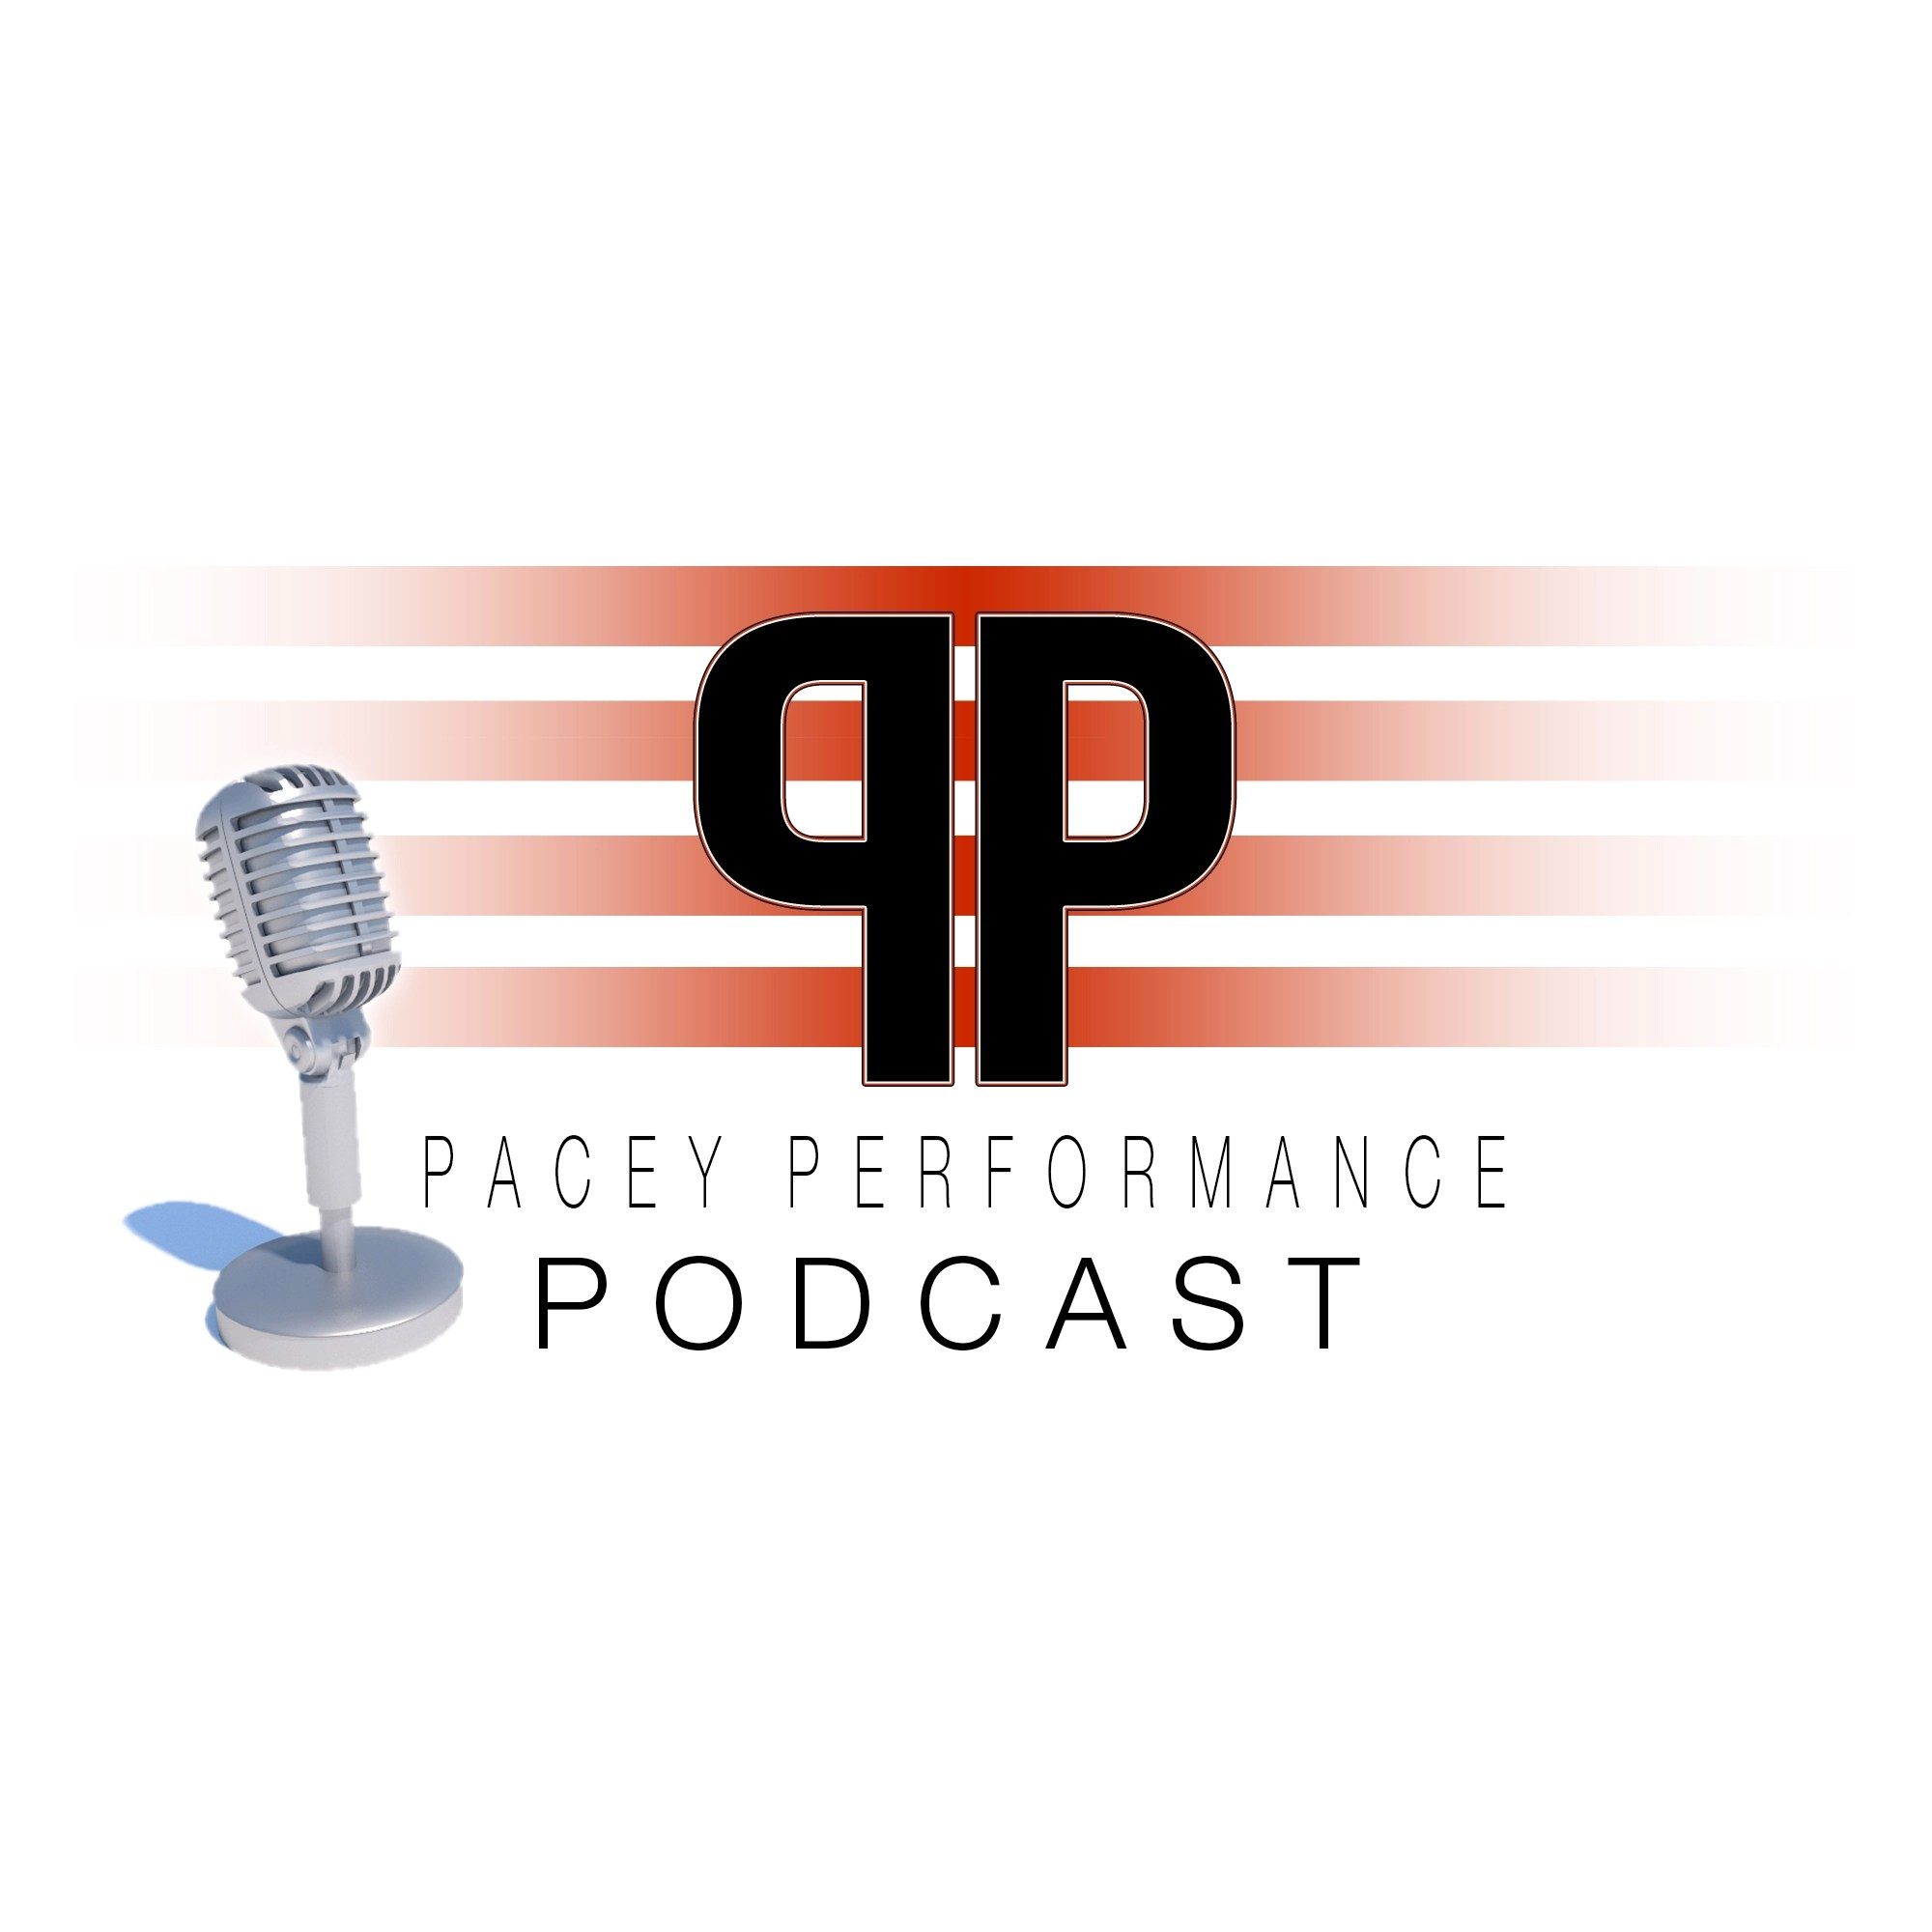 Rugby Coach Cover Letter Pacey Performance Podcast